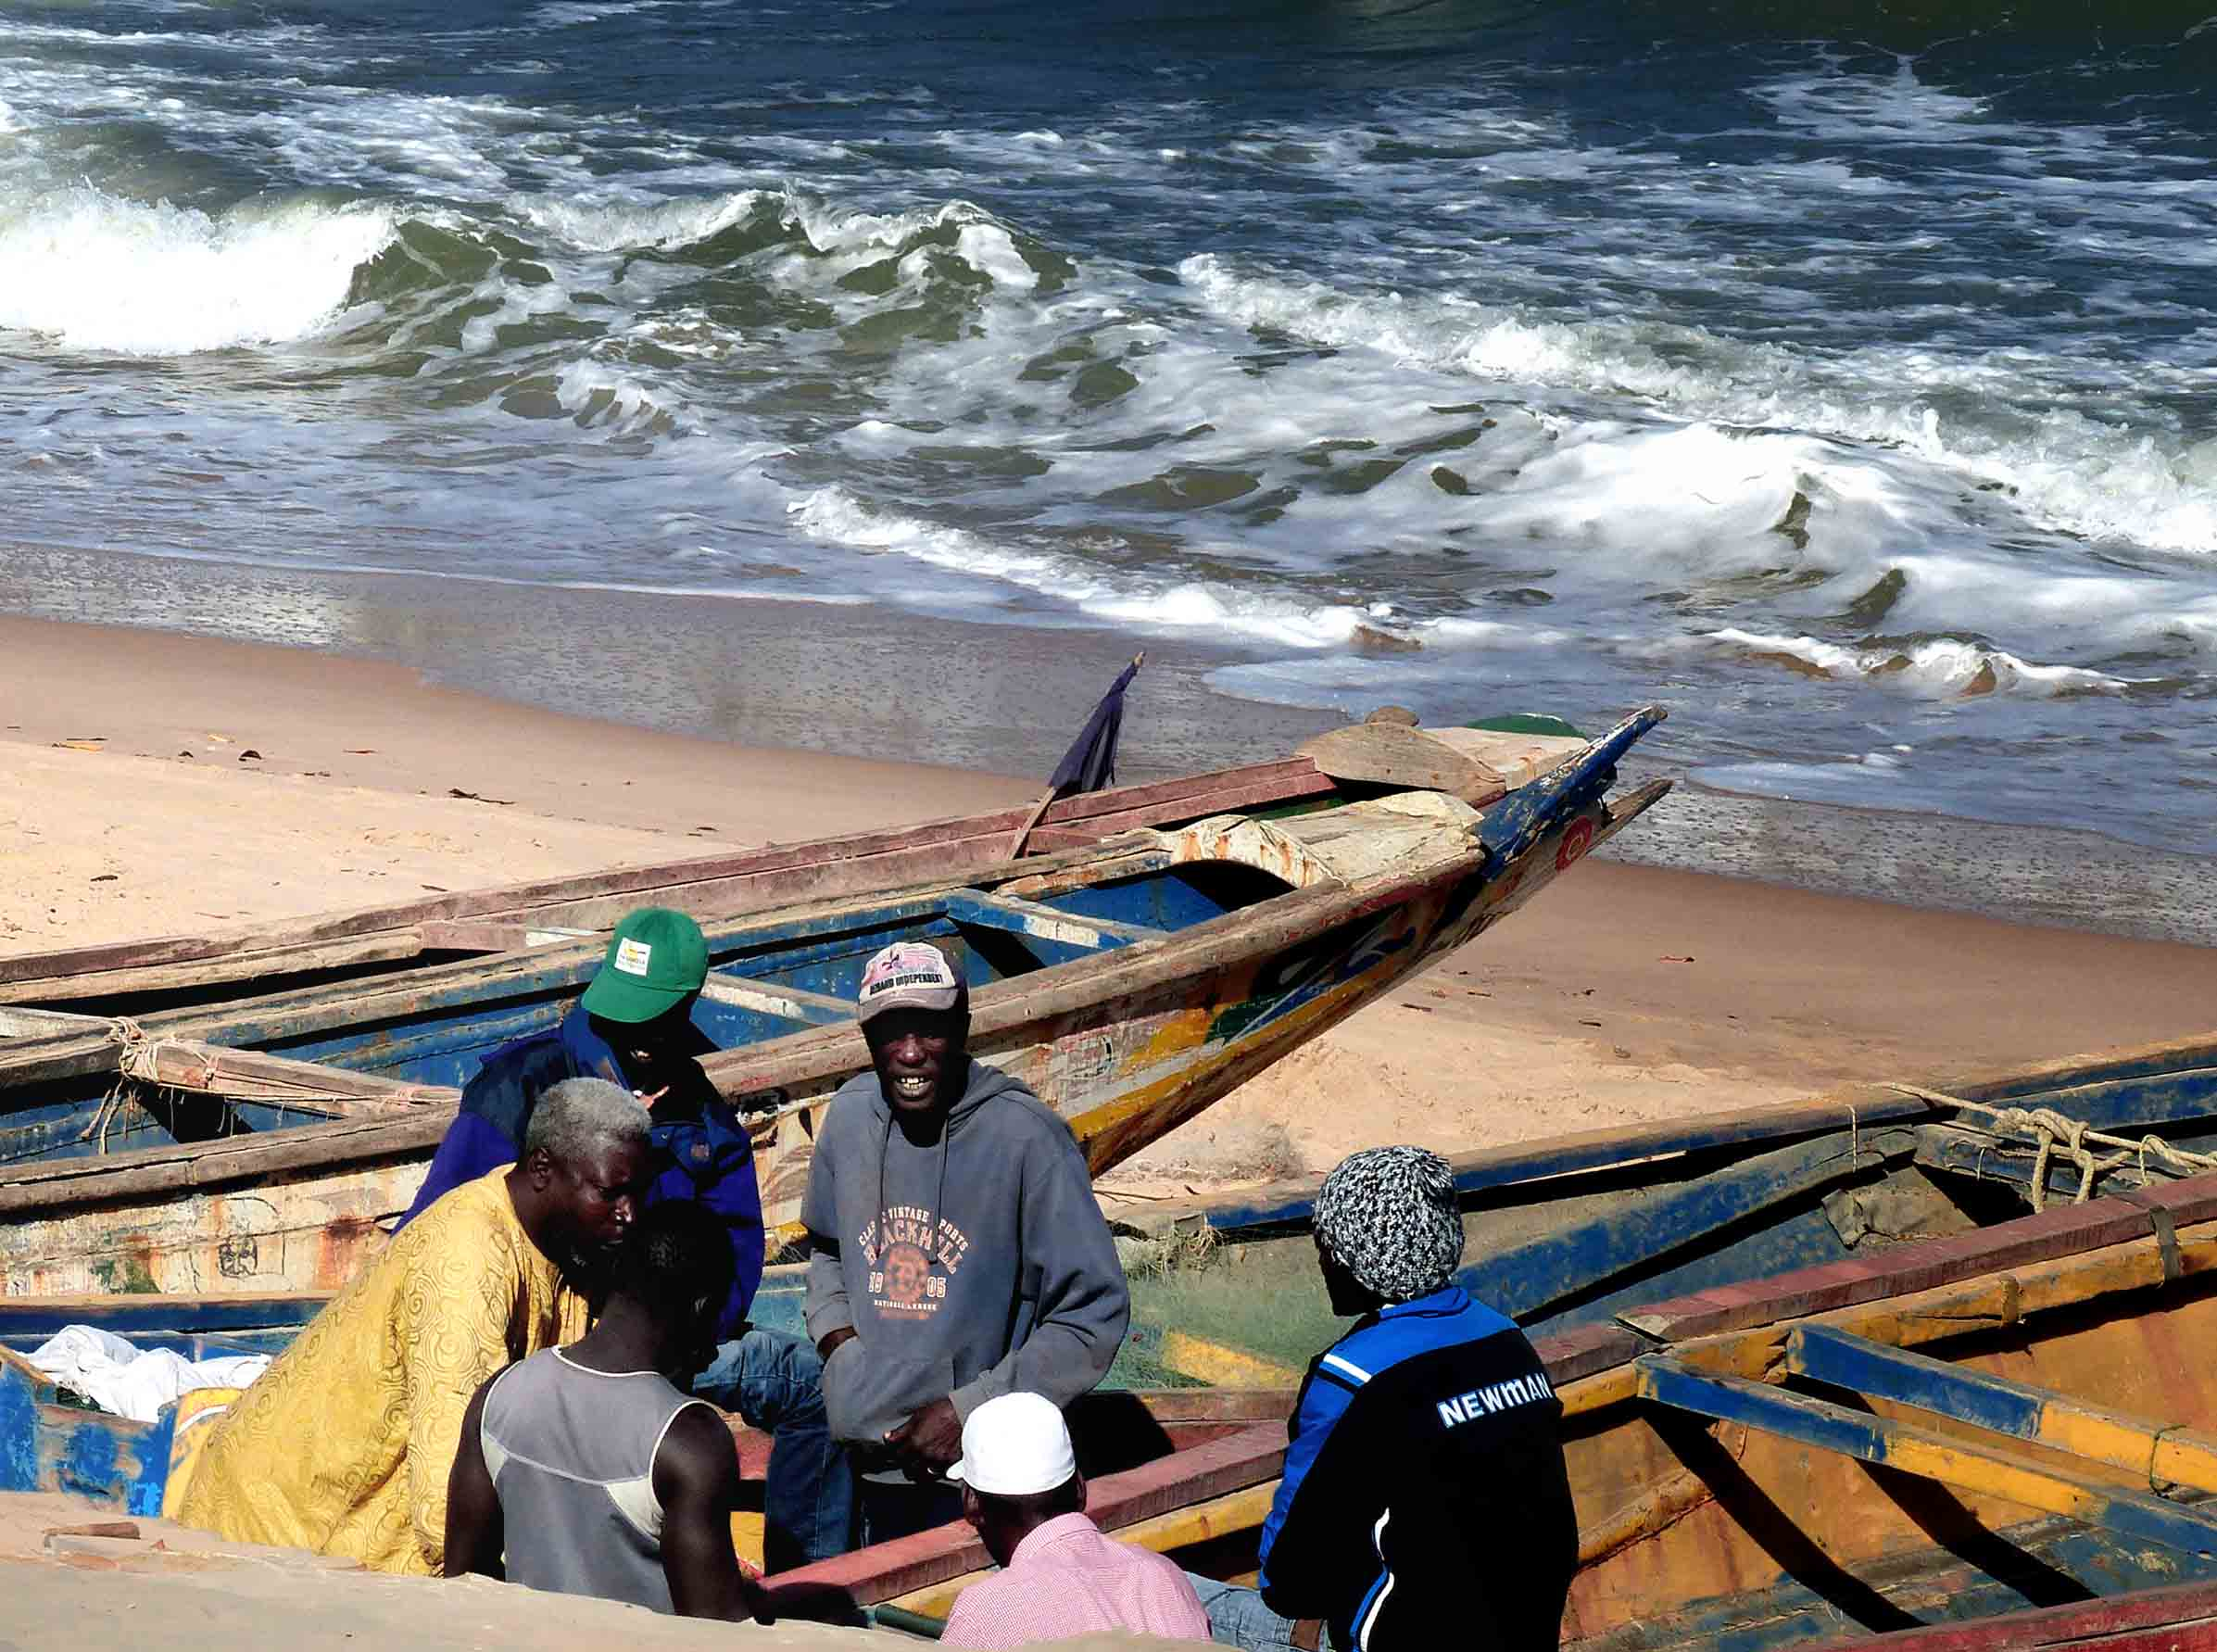 Group of men sitting among fishing boats on a beach